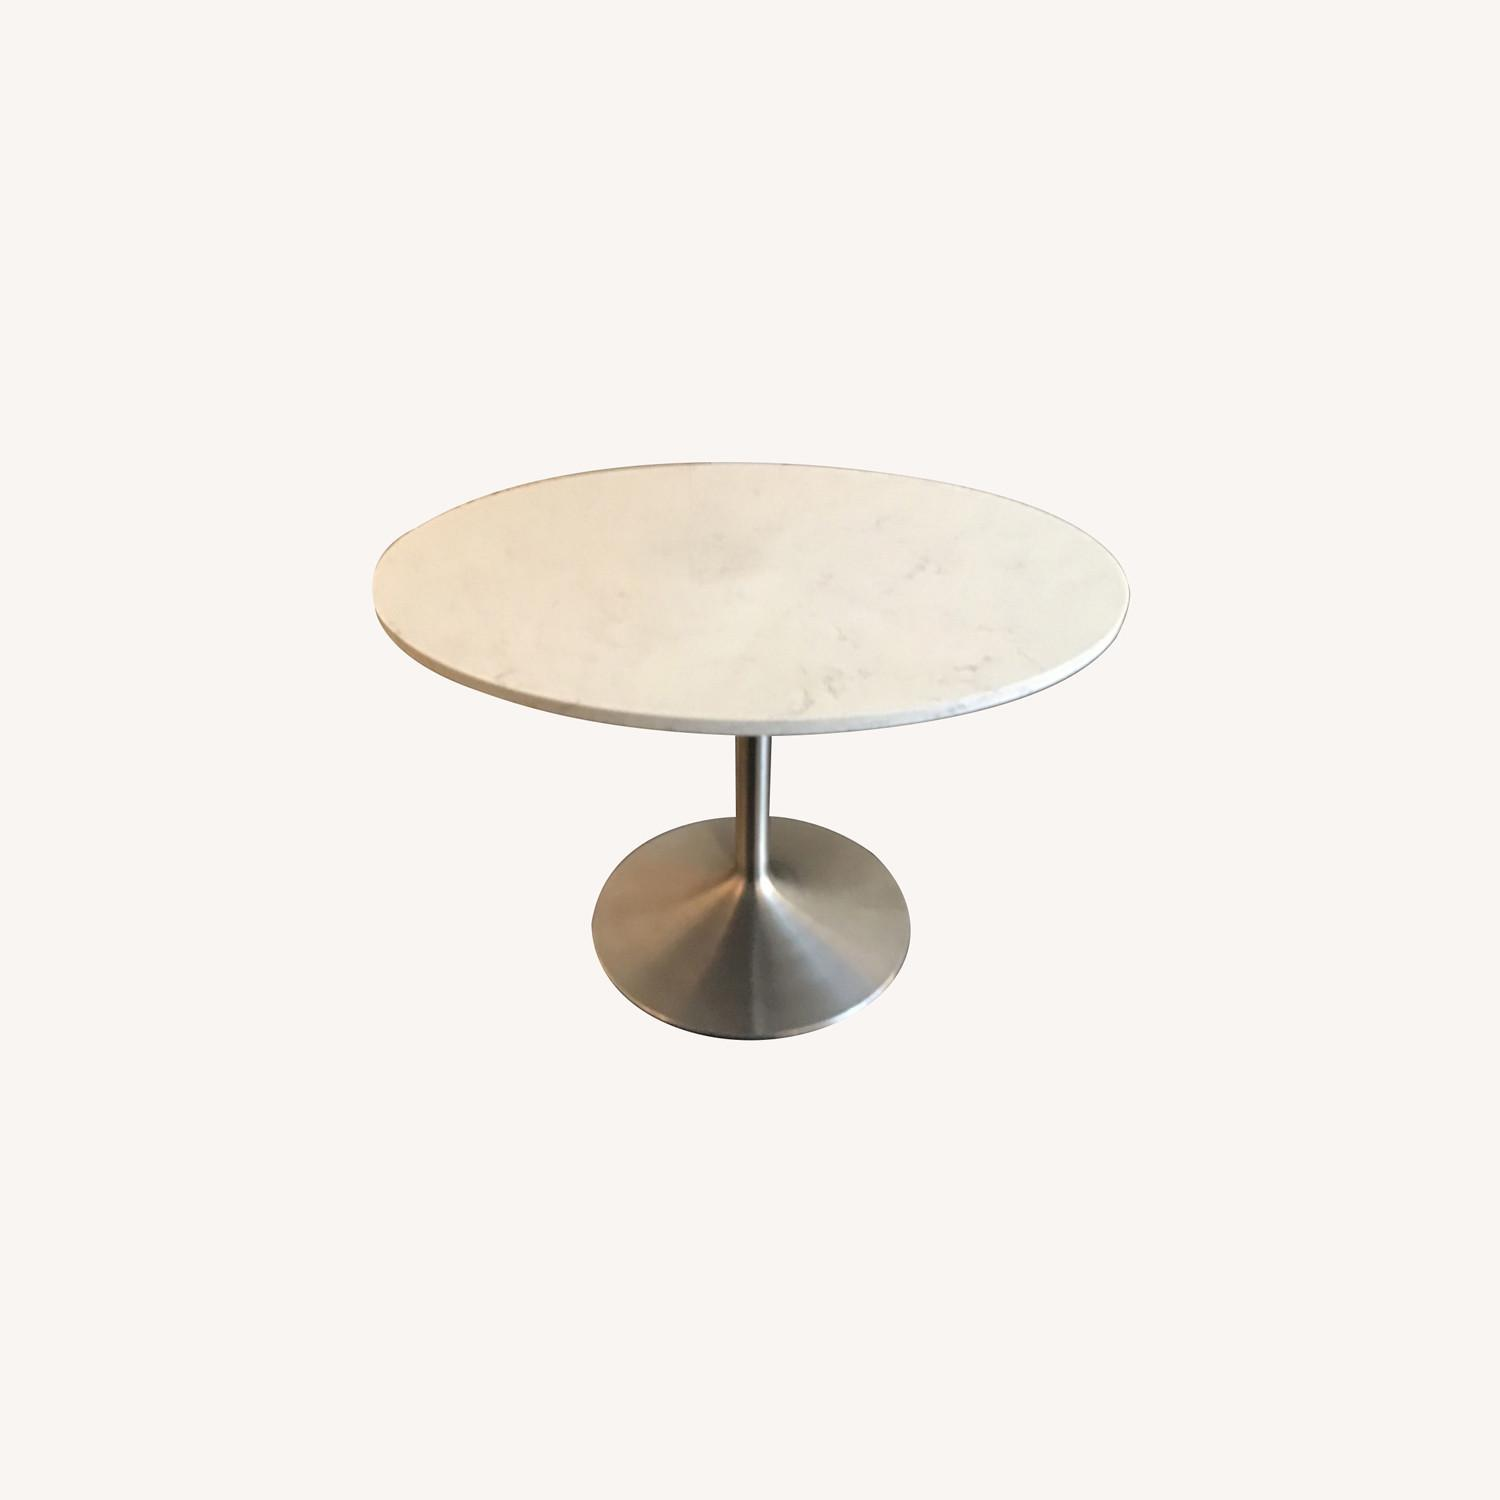 Room & Board Aria Marble Round Dining Table - image-0